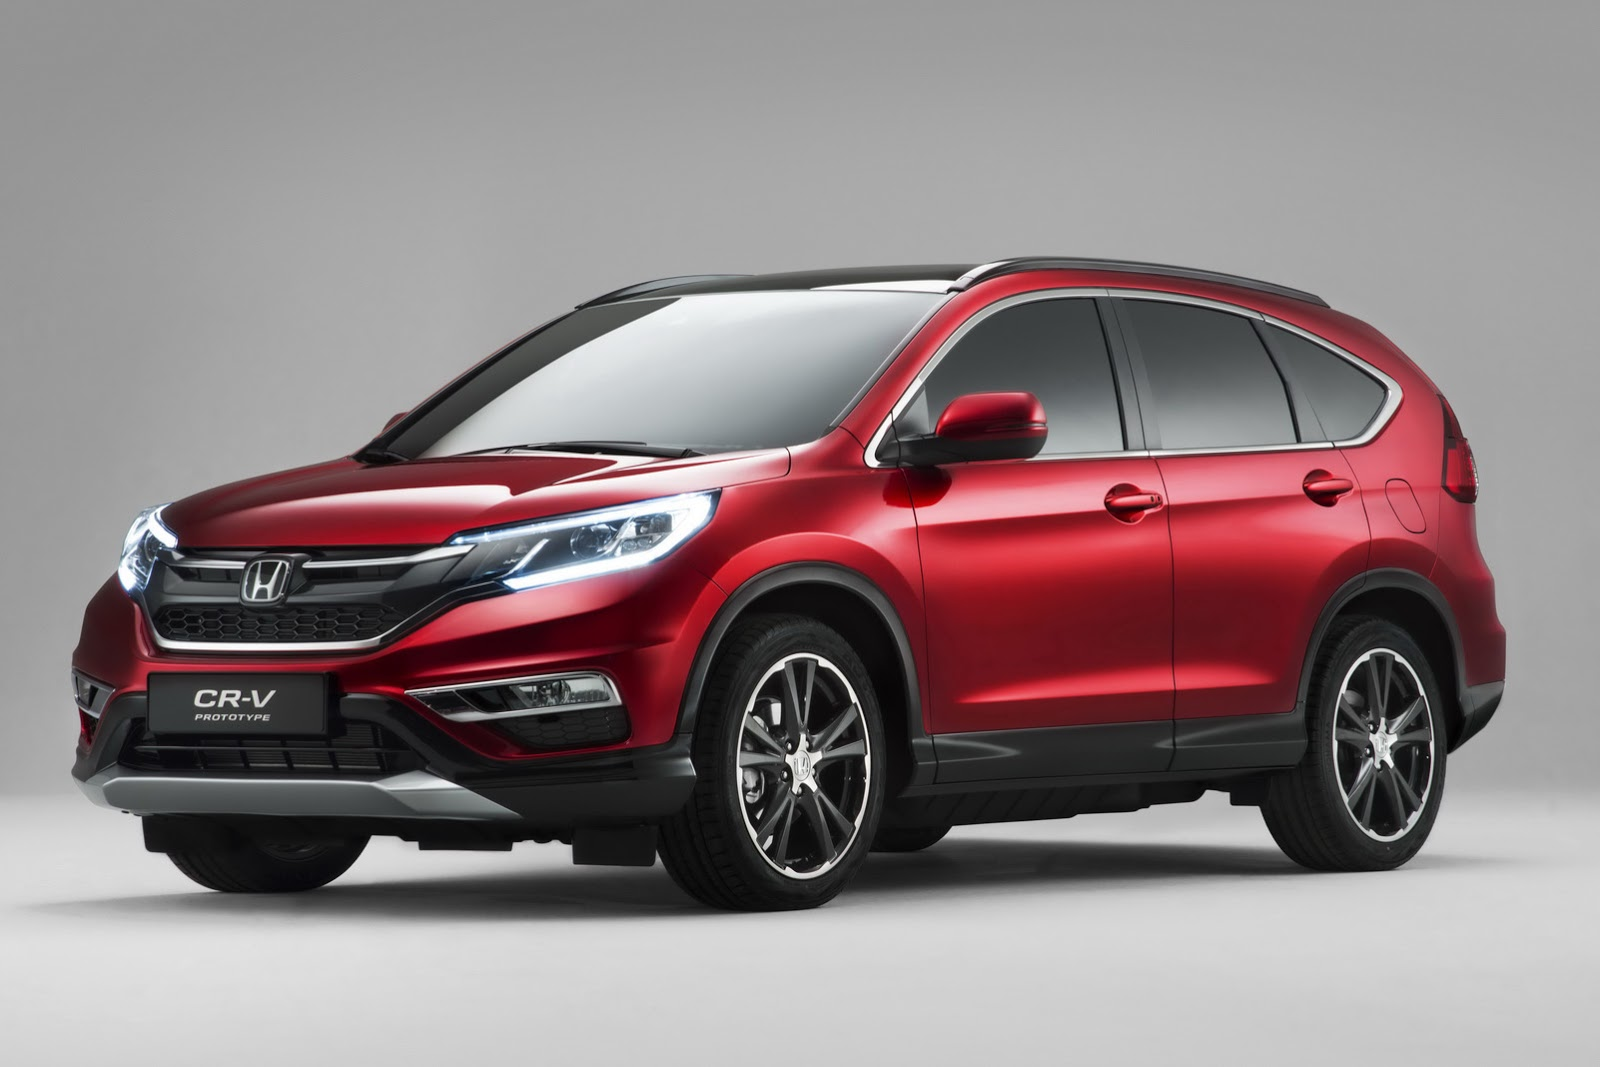 honda 39 s 2015 cr v facelift for europe gets new 160ps 1 6l diesel carscoops. Black Bedroom Furniture Sets. Home Design Ideas